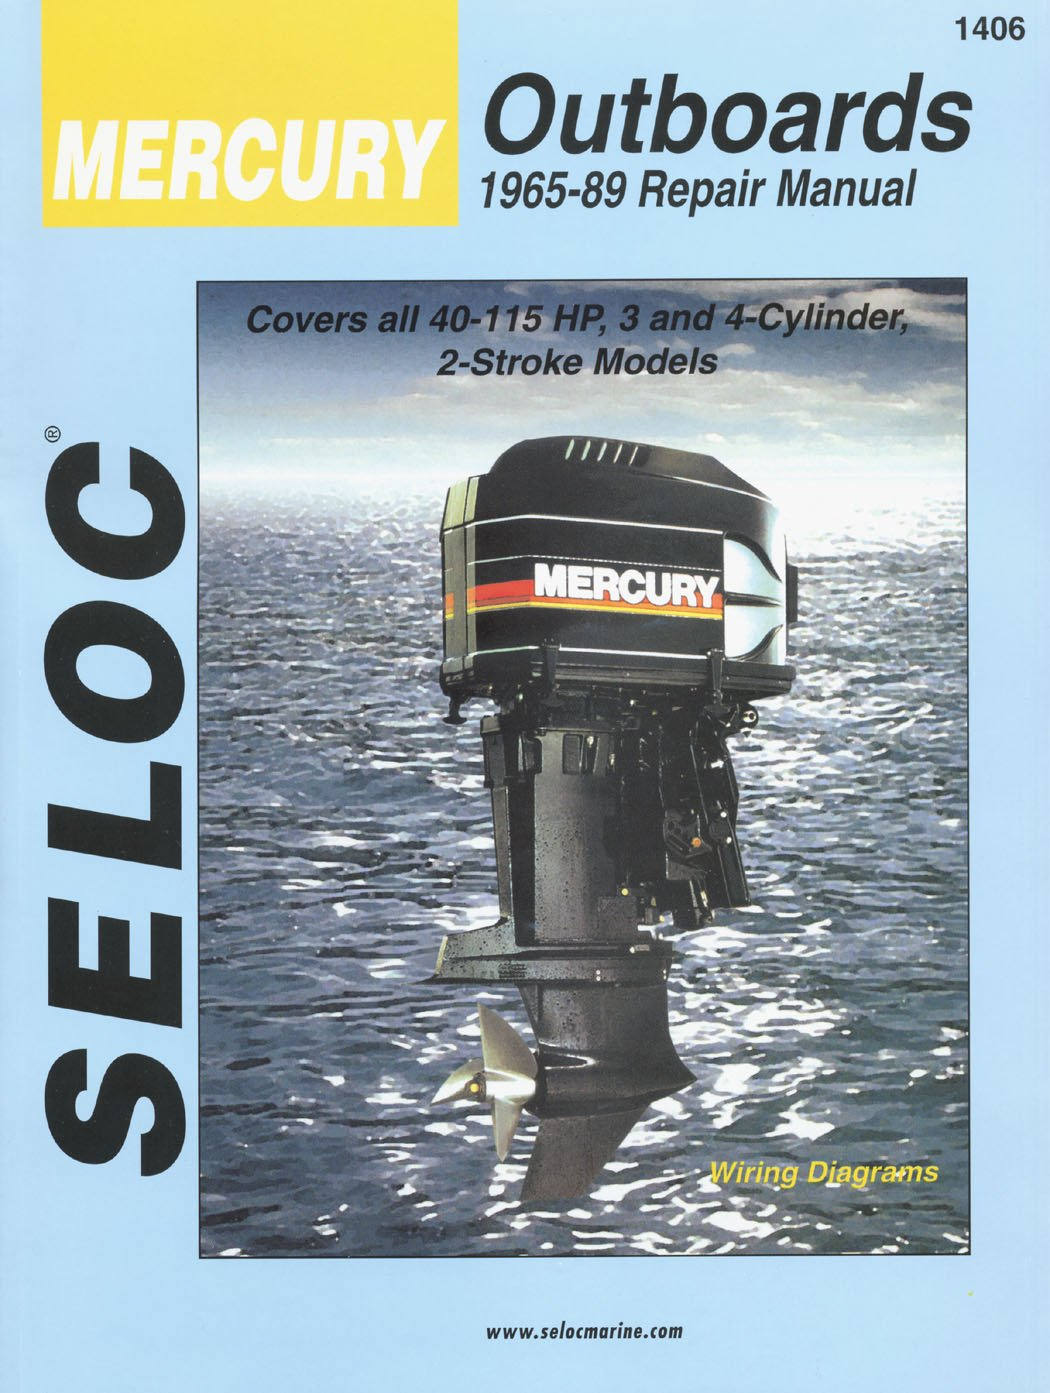 Sierra International Seloc Manual 18 01406 Mercury Boat Wiring For Dummies Outboards Repair 1965 1989 40 115 Hp 3 4 Cylinder 2 Stroke Model Sports Outdoors